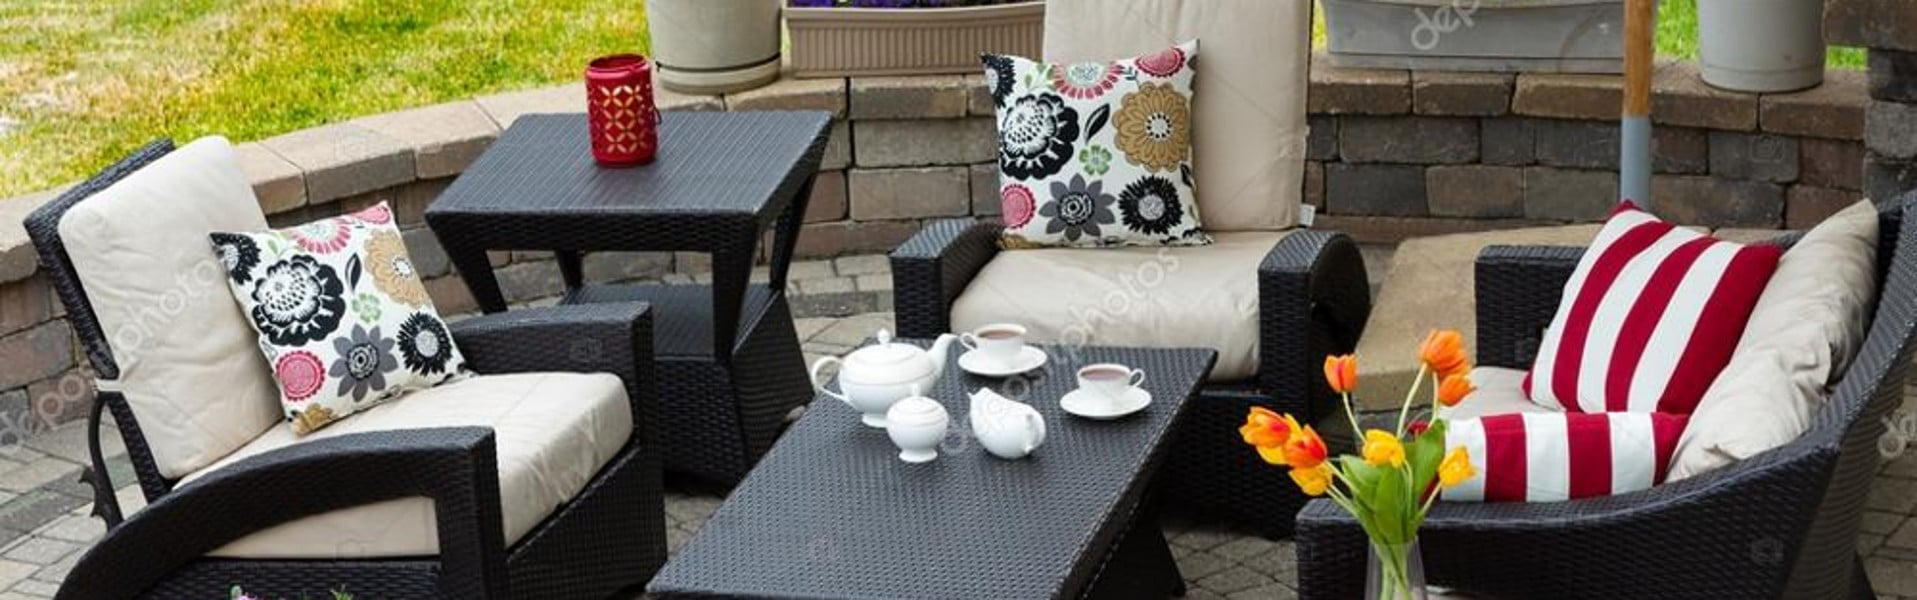 patio furniture cleaning in Toronto ON